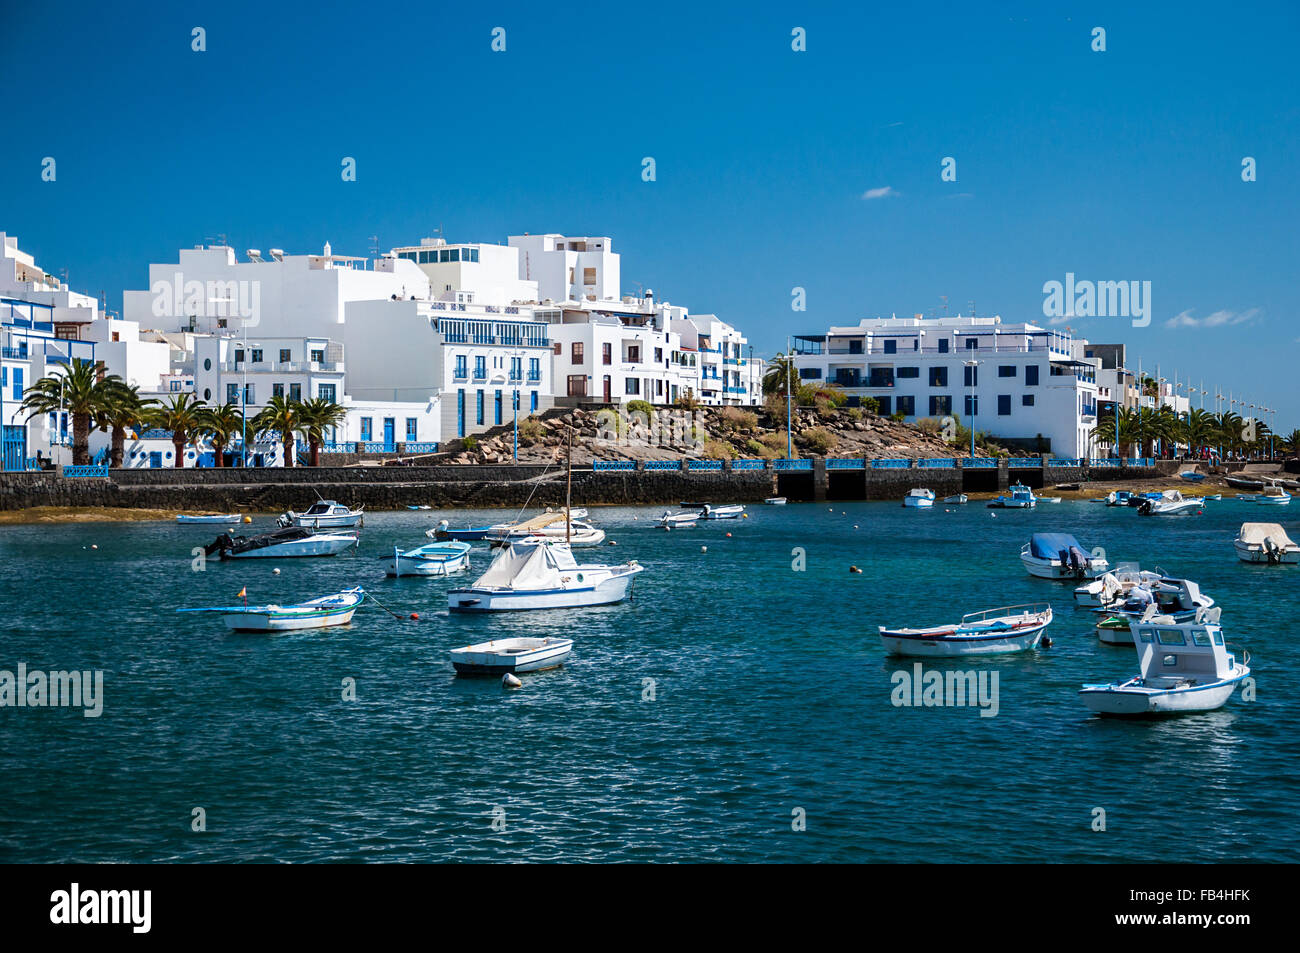 Fisher boats at the laguna Charco de San Gines, city of Arrecife, Lanzarote, Canary Islands. - Stock Image